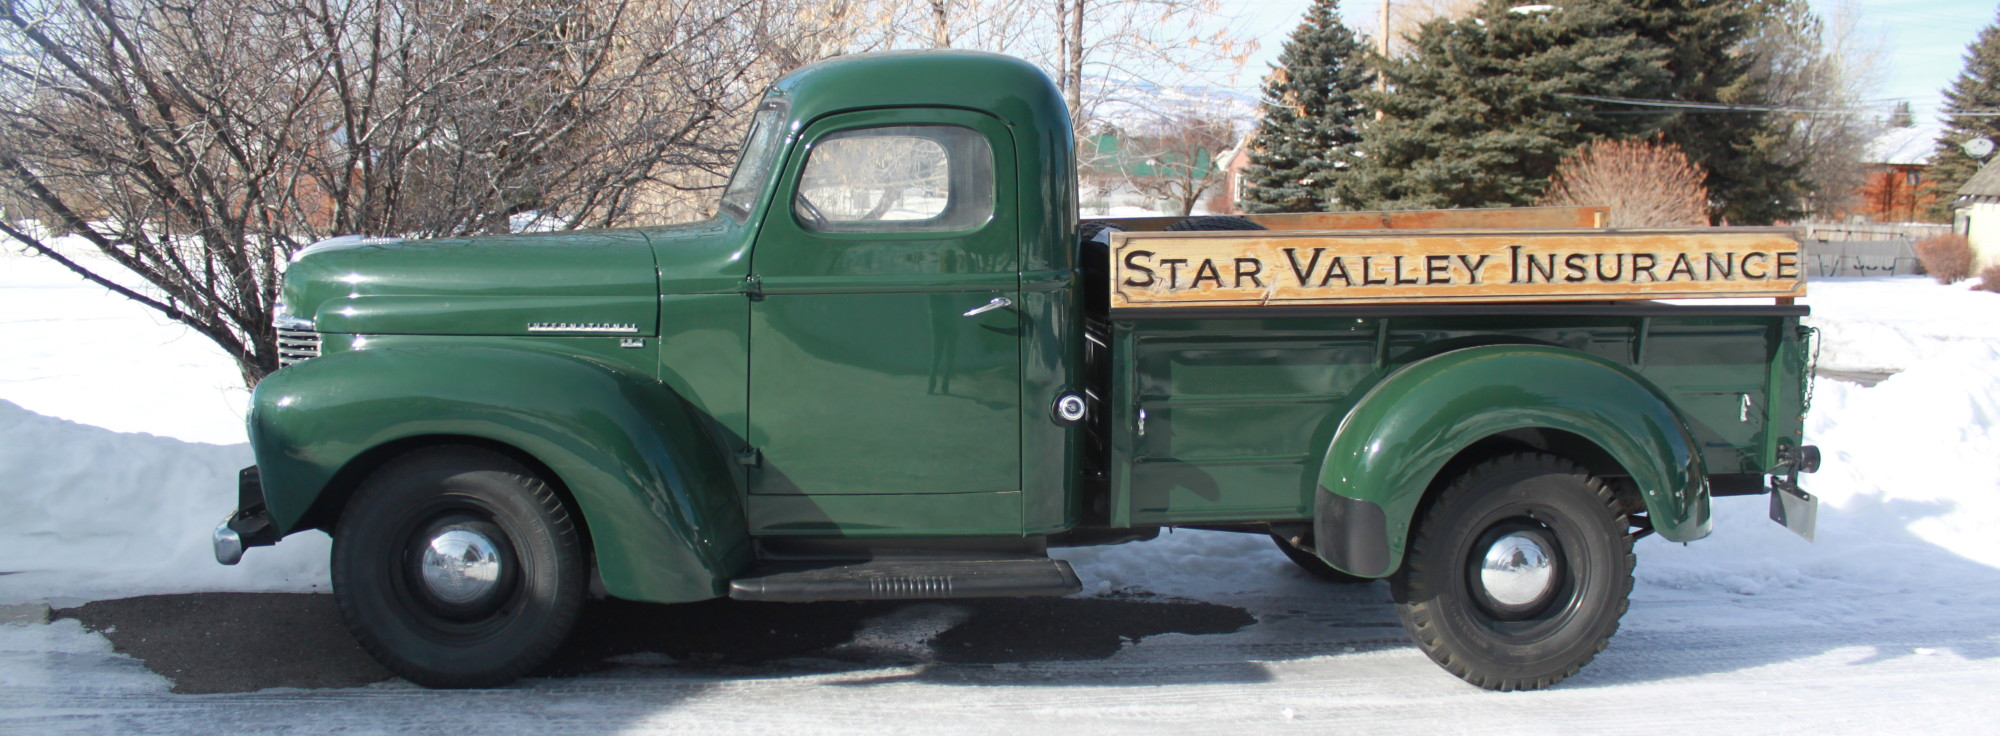 Star Valley Insurance